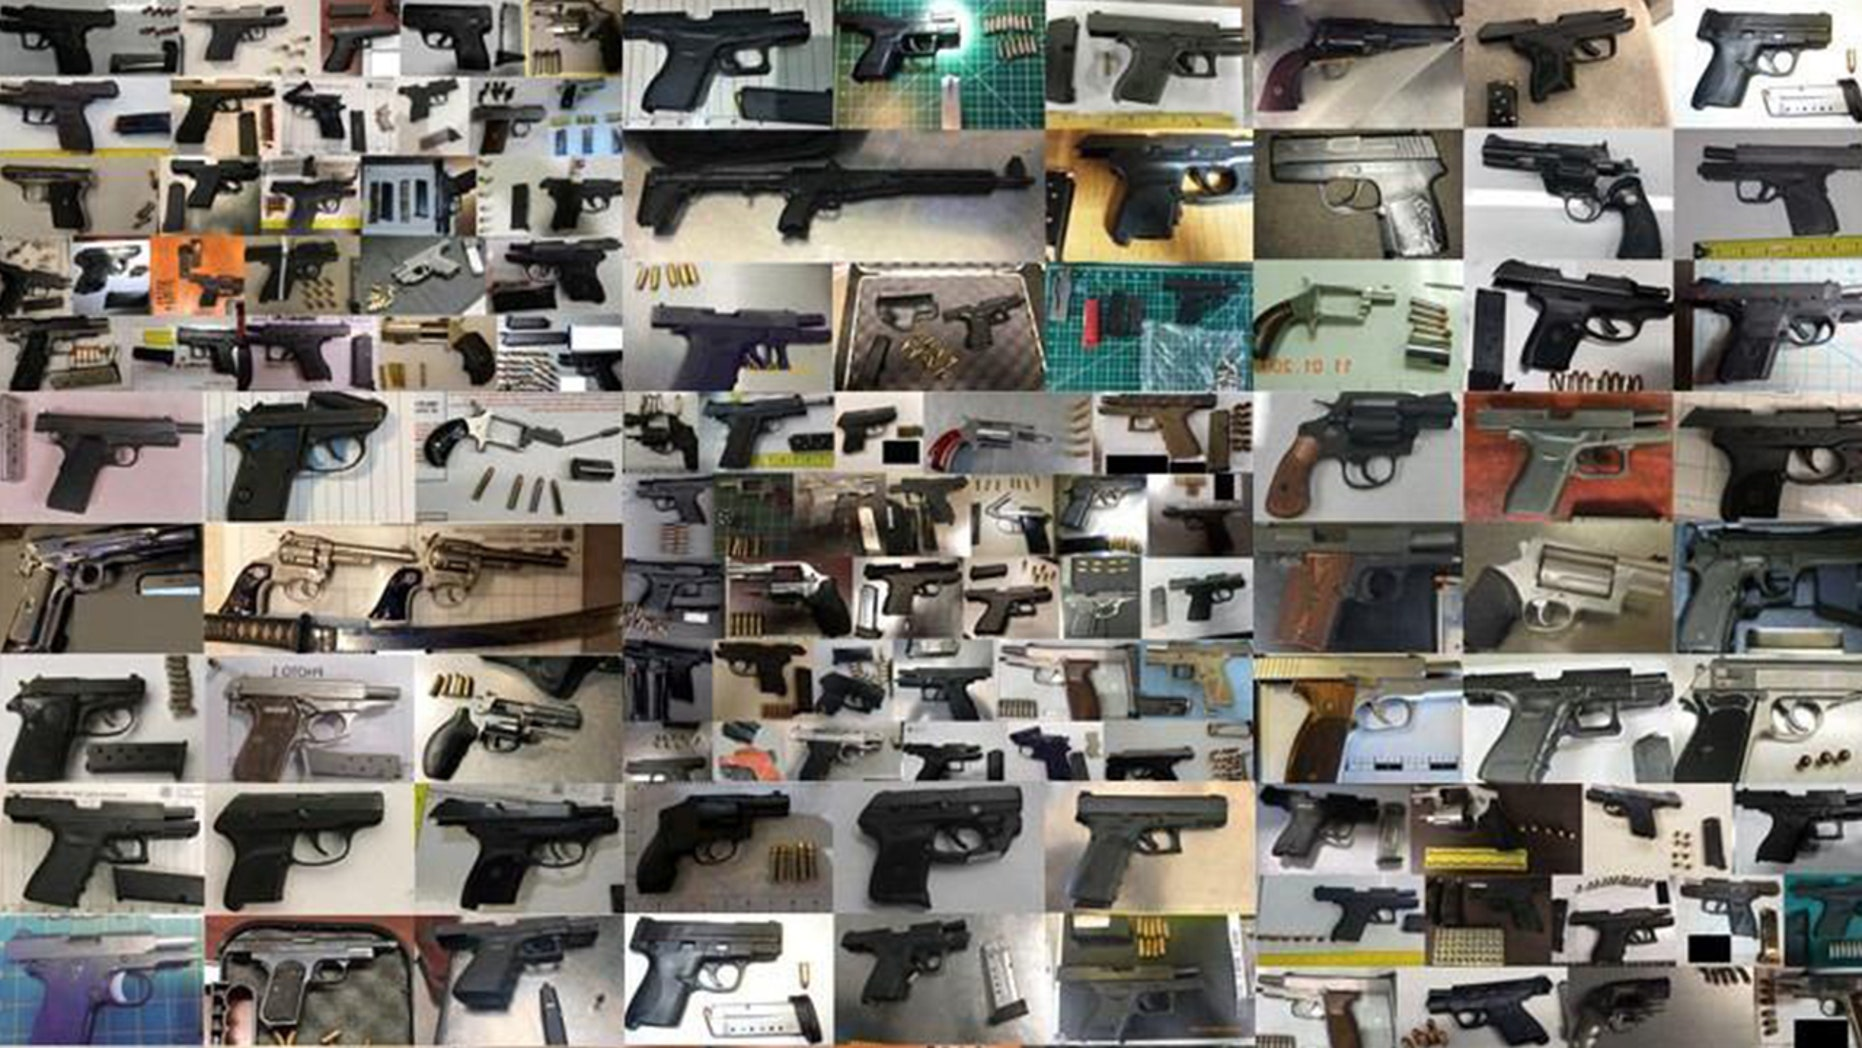 TSA confiscated record number of guns from carry-ons in 2018